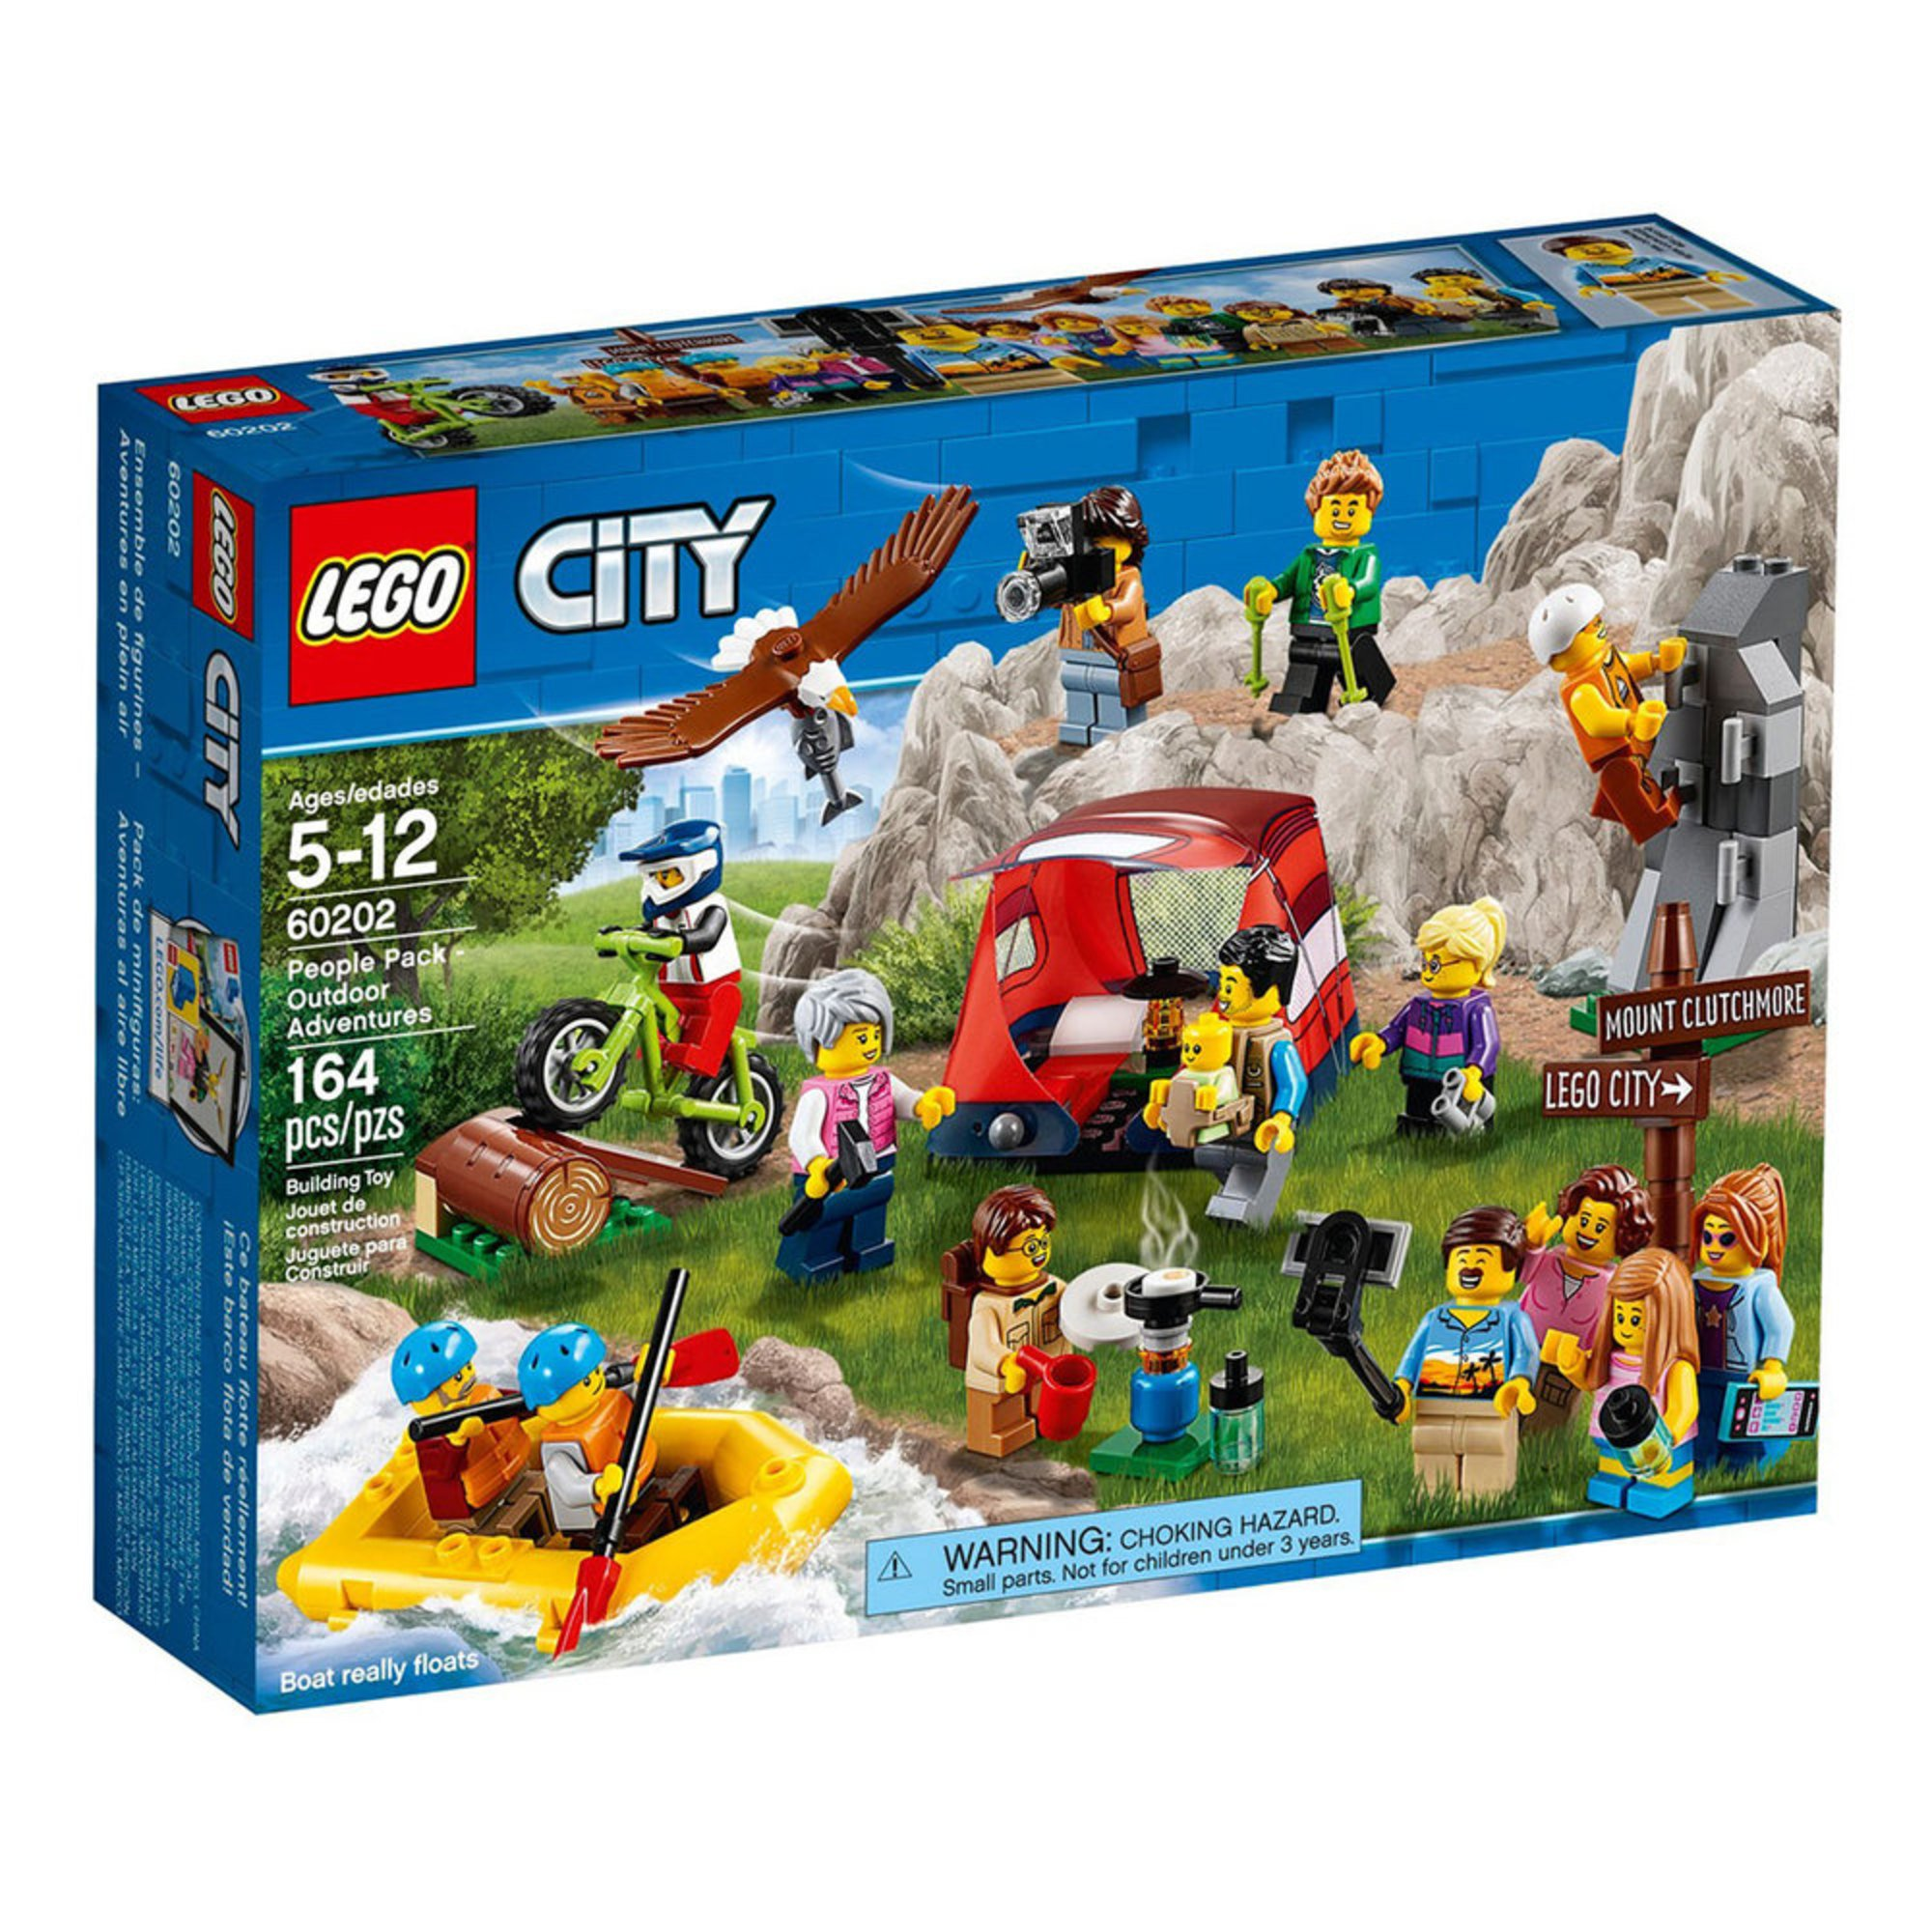 Lego City People Pack Outdoor Adventures 60202 Toys Baby